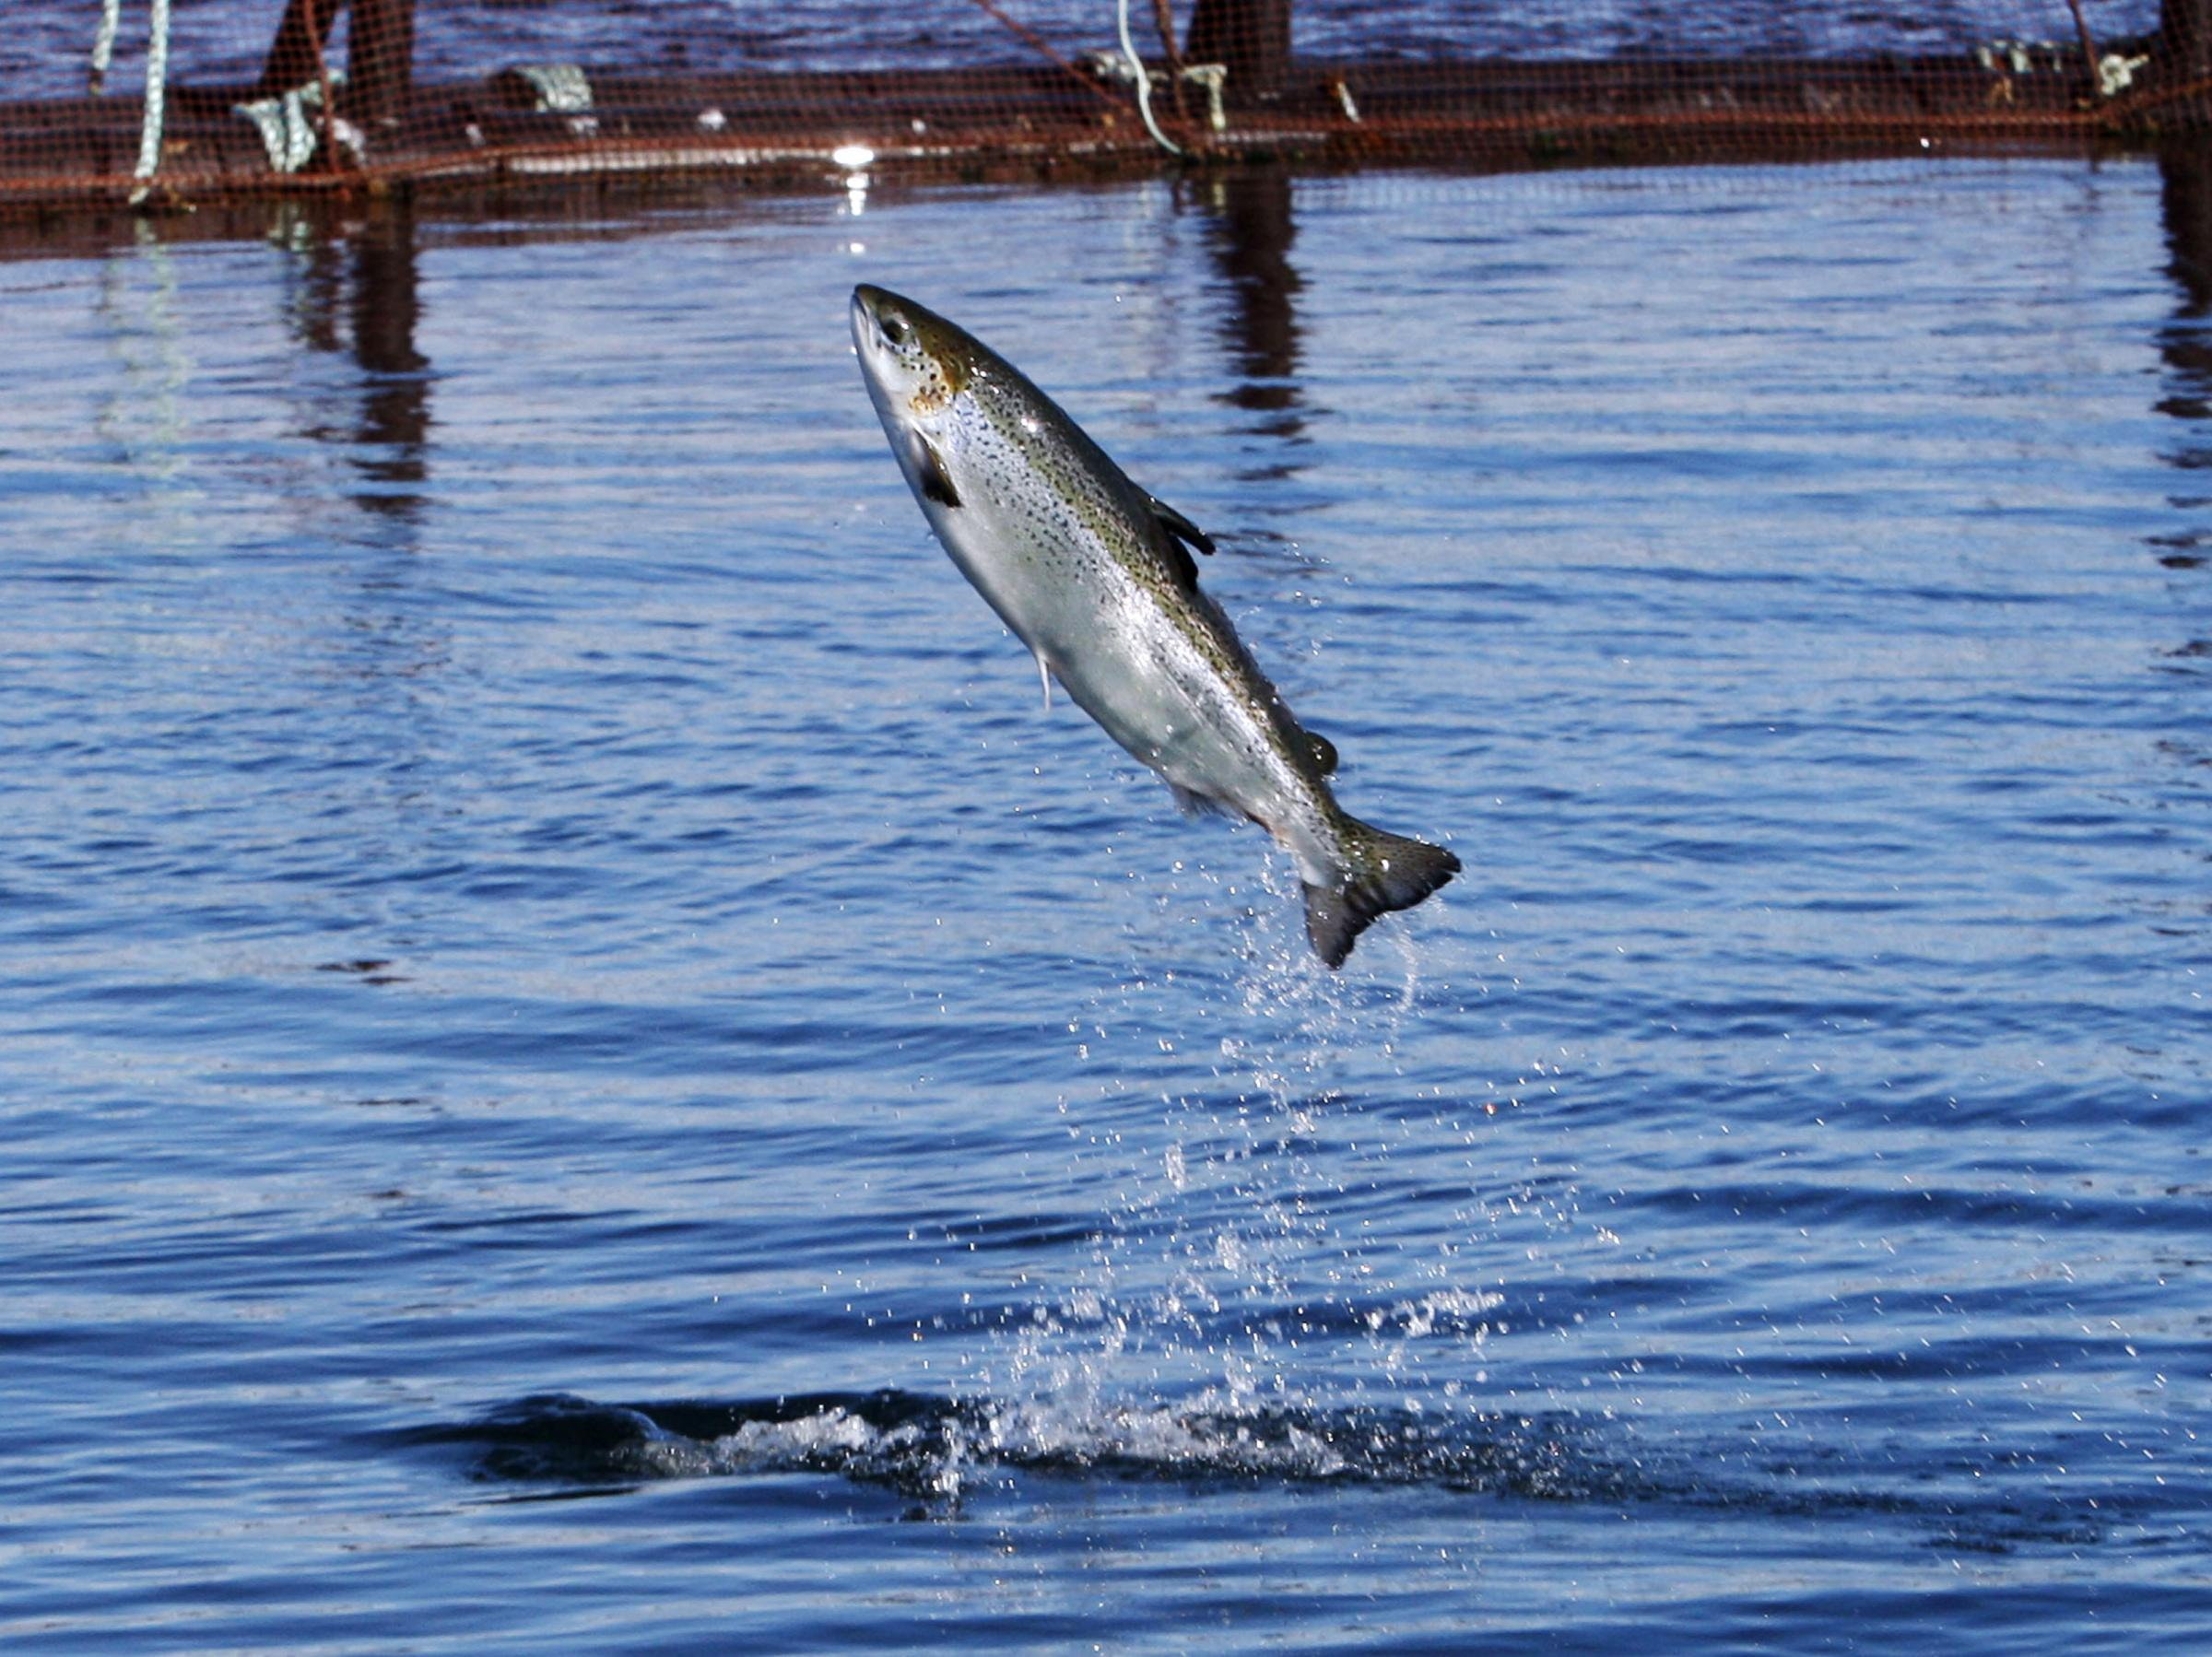 Getting a more svelte salmon to your dinner plate kuow for Public fishing near me